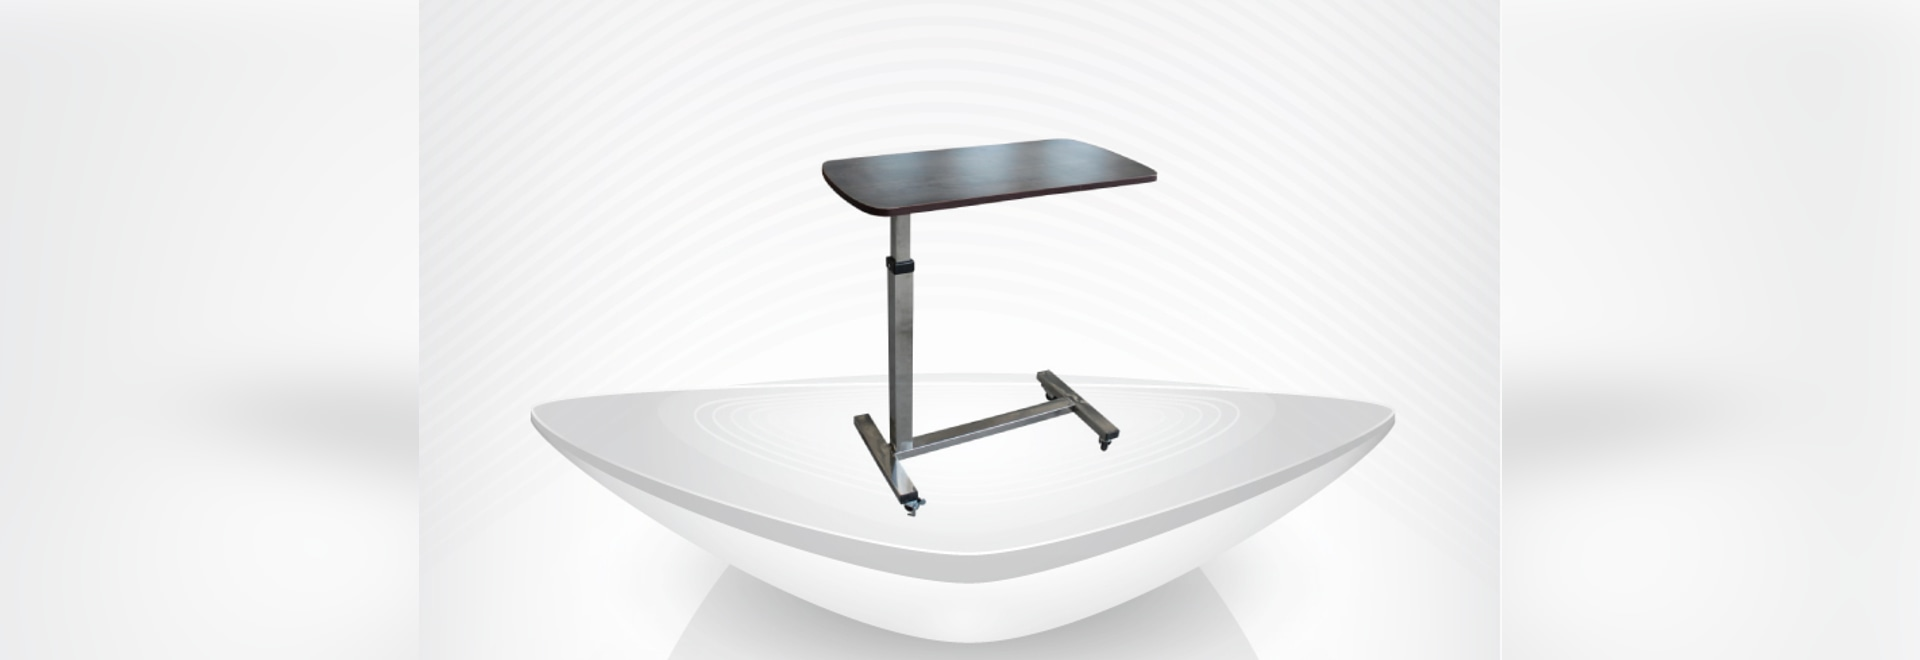 medical movable height adjustable hospital overbed table / wooden dinning board table